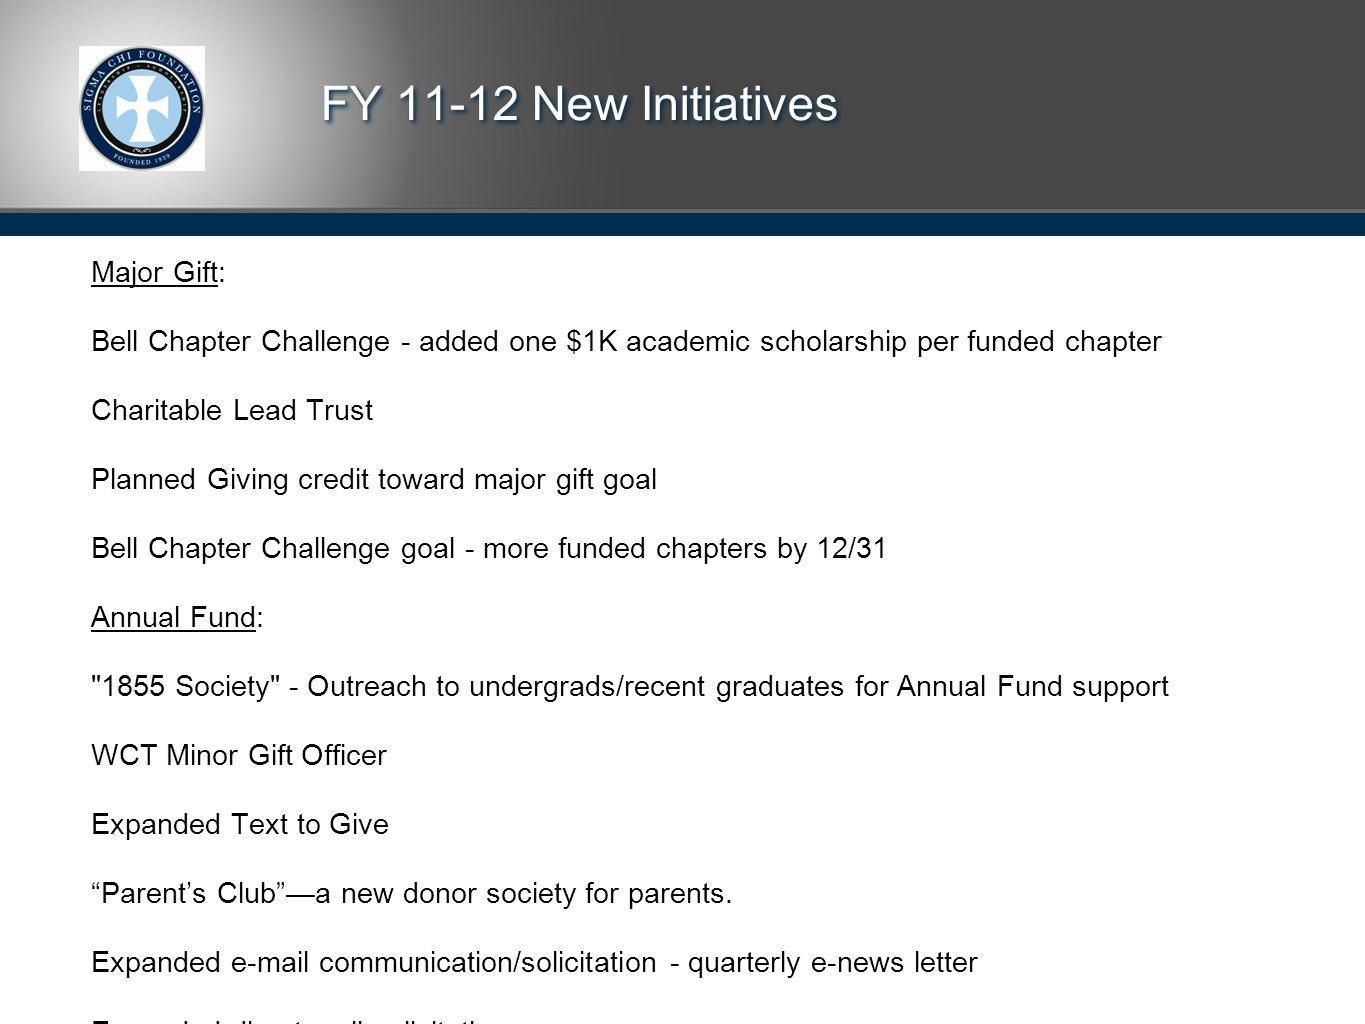 FY 11-12 New Initiatives Major Gift: Bell Chapter Challenge - added one $1K academic scholarship per funded chapter Charitable Lead Trust Planned Giving credit toward major gift goal Bell Chapter Challenge goal - more funded chapters by 12/31 Annual Fund: 1855 Society - Outreach to undergrads/recent graduates for Annual Fund support WCT Minor Gift Officer Expanded Text to Give Parent's Club —a new donor society for parents.